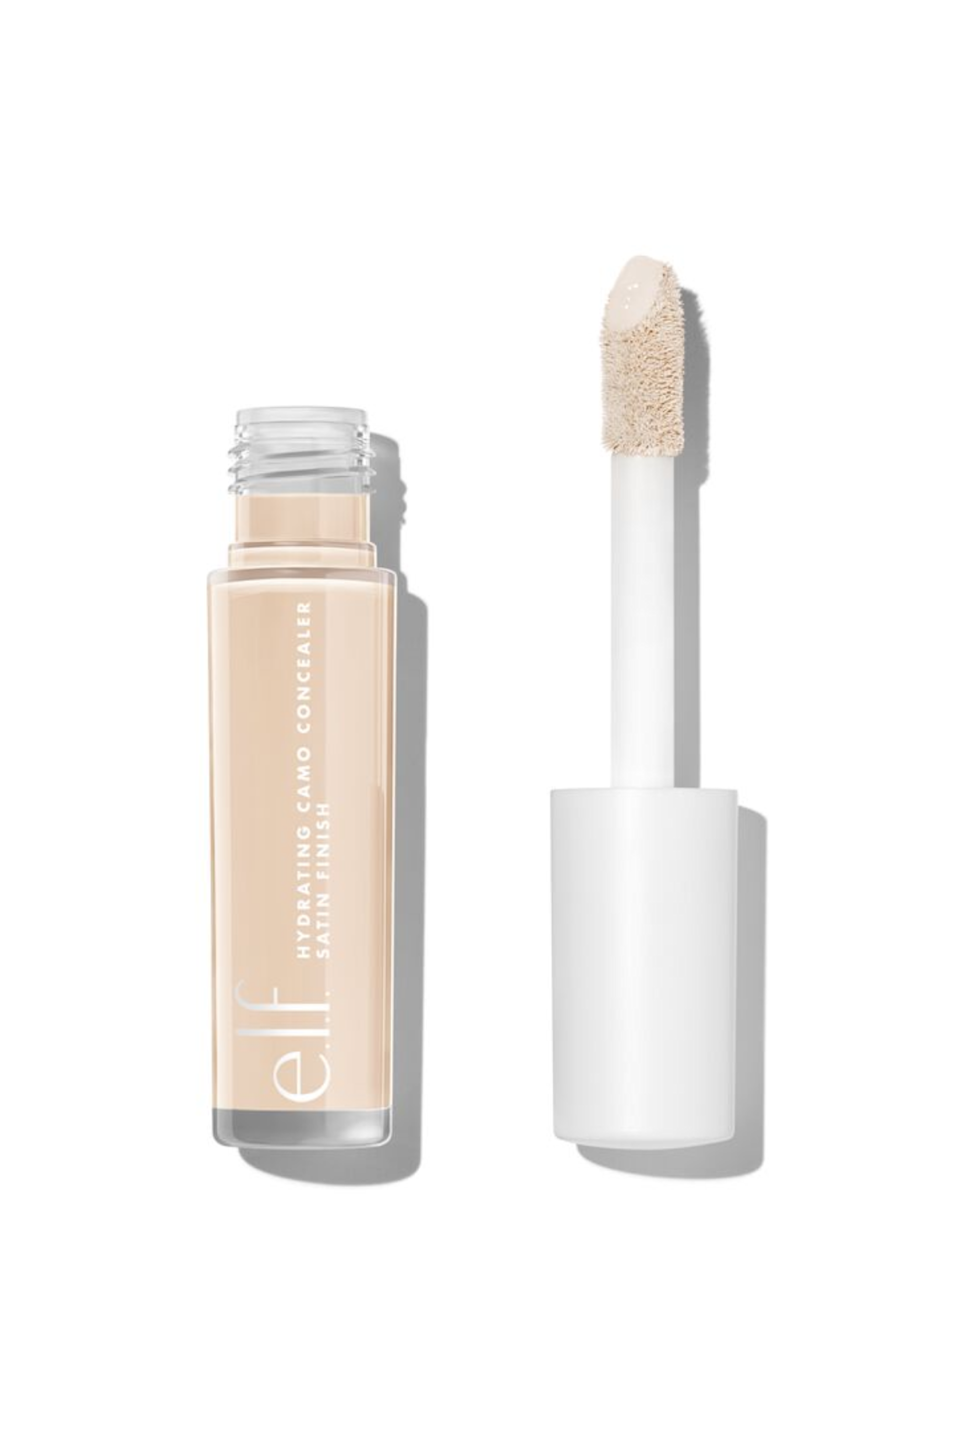 """<p><strong>e.l.f. Cosmetics</strong></p><p>ulta.com</p><p><strong>$6.00</strong></p><p><a href=""""https://go.redirectingat.com?id=74968X1596630&url=https%3A%2F%2Fwww.ulta.com%2Fp%2Fhydrating-camo-concealer-pimprod2013395&sref=https%3A%2F%2Fwww.seventeen.com%2Fbeauty%2Fmakeup-skincare%2Fg36866431%2Fbest-elf-makeup-skincare-products%2F"""" rel=""""nofollow noopener"""" target=""""_blank"""" data-ylk=""""slk:Shop Now"""" class=""""link rapid-noclick-resp"""">Shop Now</a></p><p>If you want a full-coverage concealer without the cakiness, look no further. E.L.F.'s Hydrating Camo Concealer comes in a range of 25 shades and is infused with Rose Flower Water to moisturize skin.</p>"""